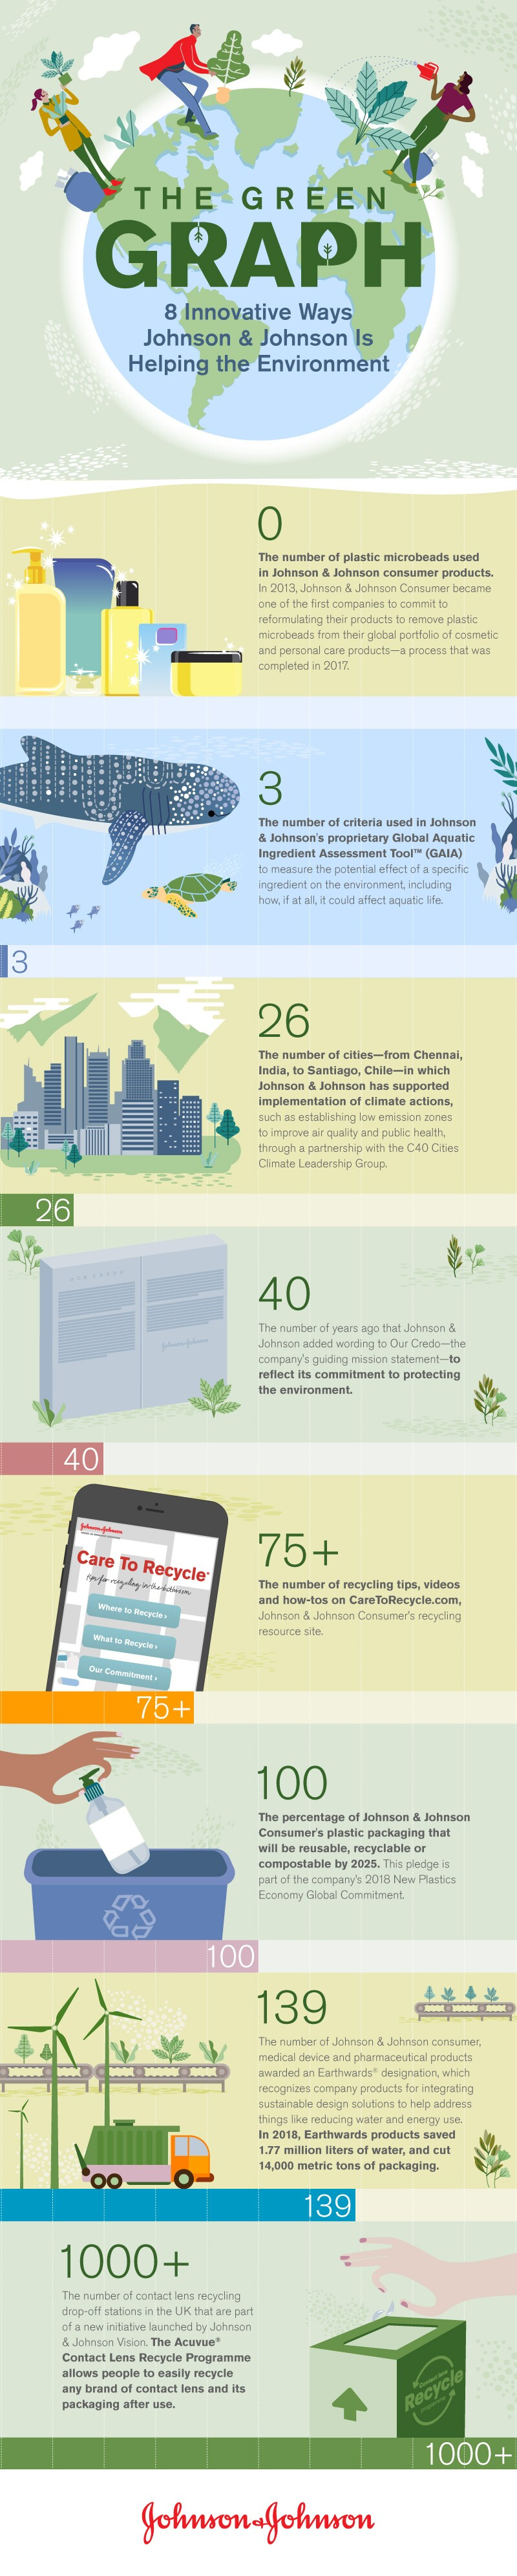 An infographic showing several Johnson & Johnson initiatives that promote environmental sustainability.